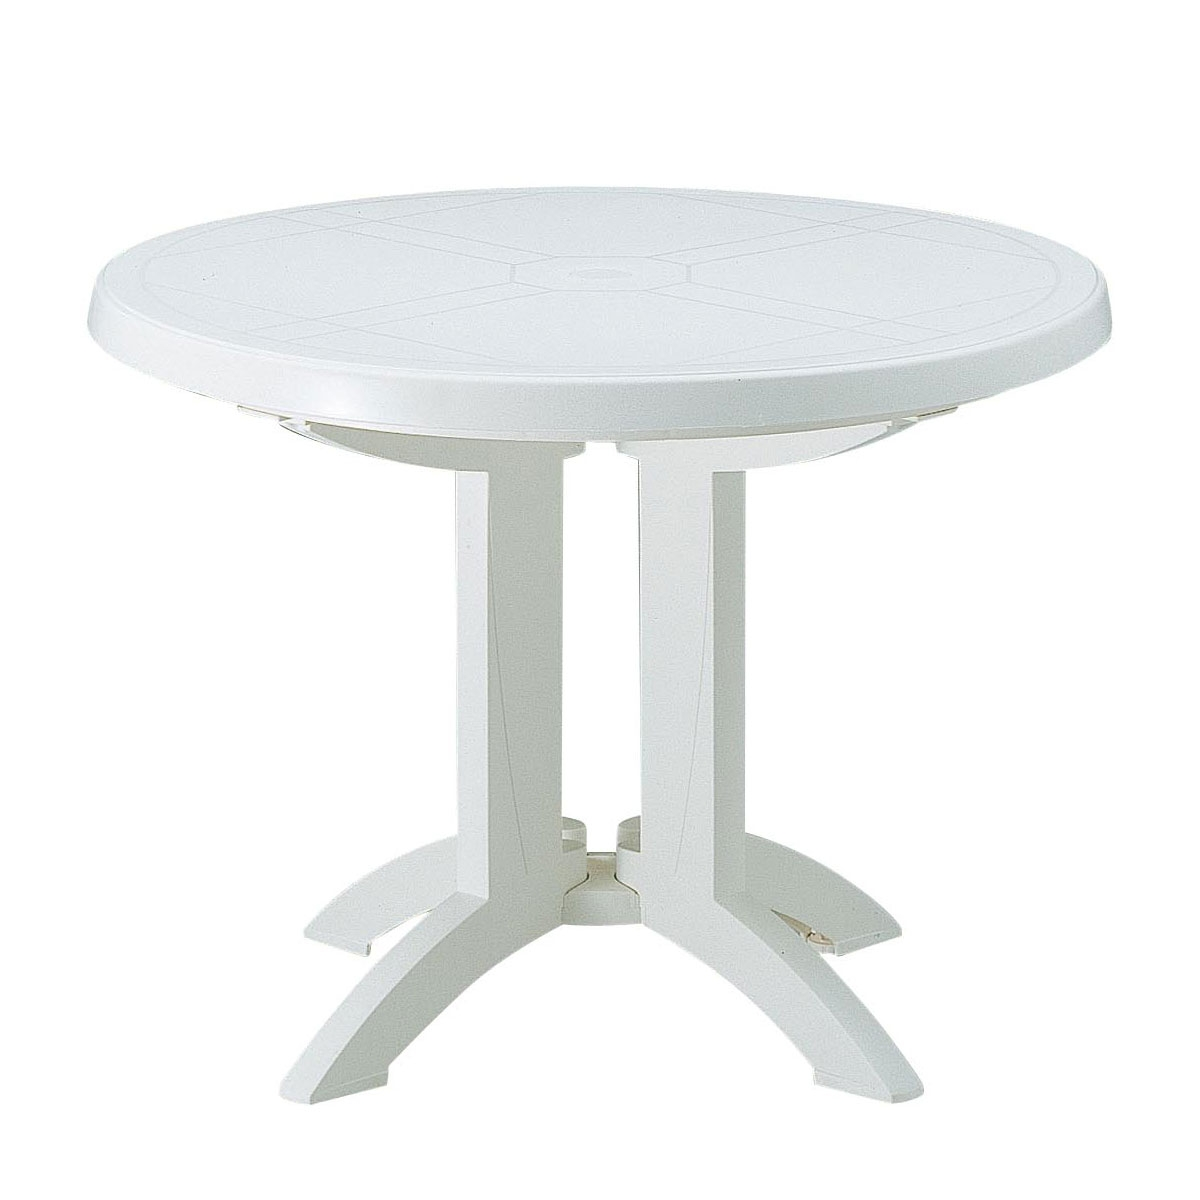 Table De Jardin Design Grosfillex Sigma ~ Designers Tools  Joy Studio Design Gallery  Best Design